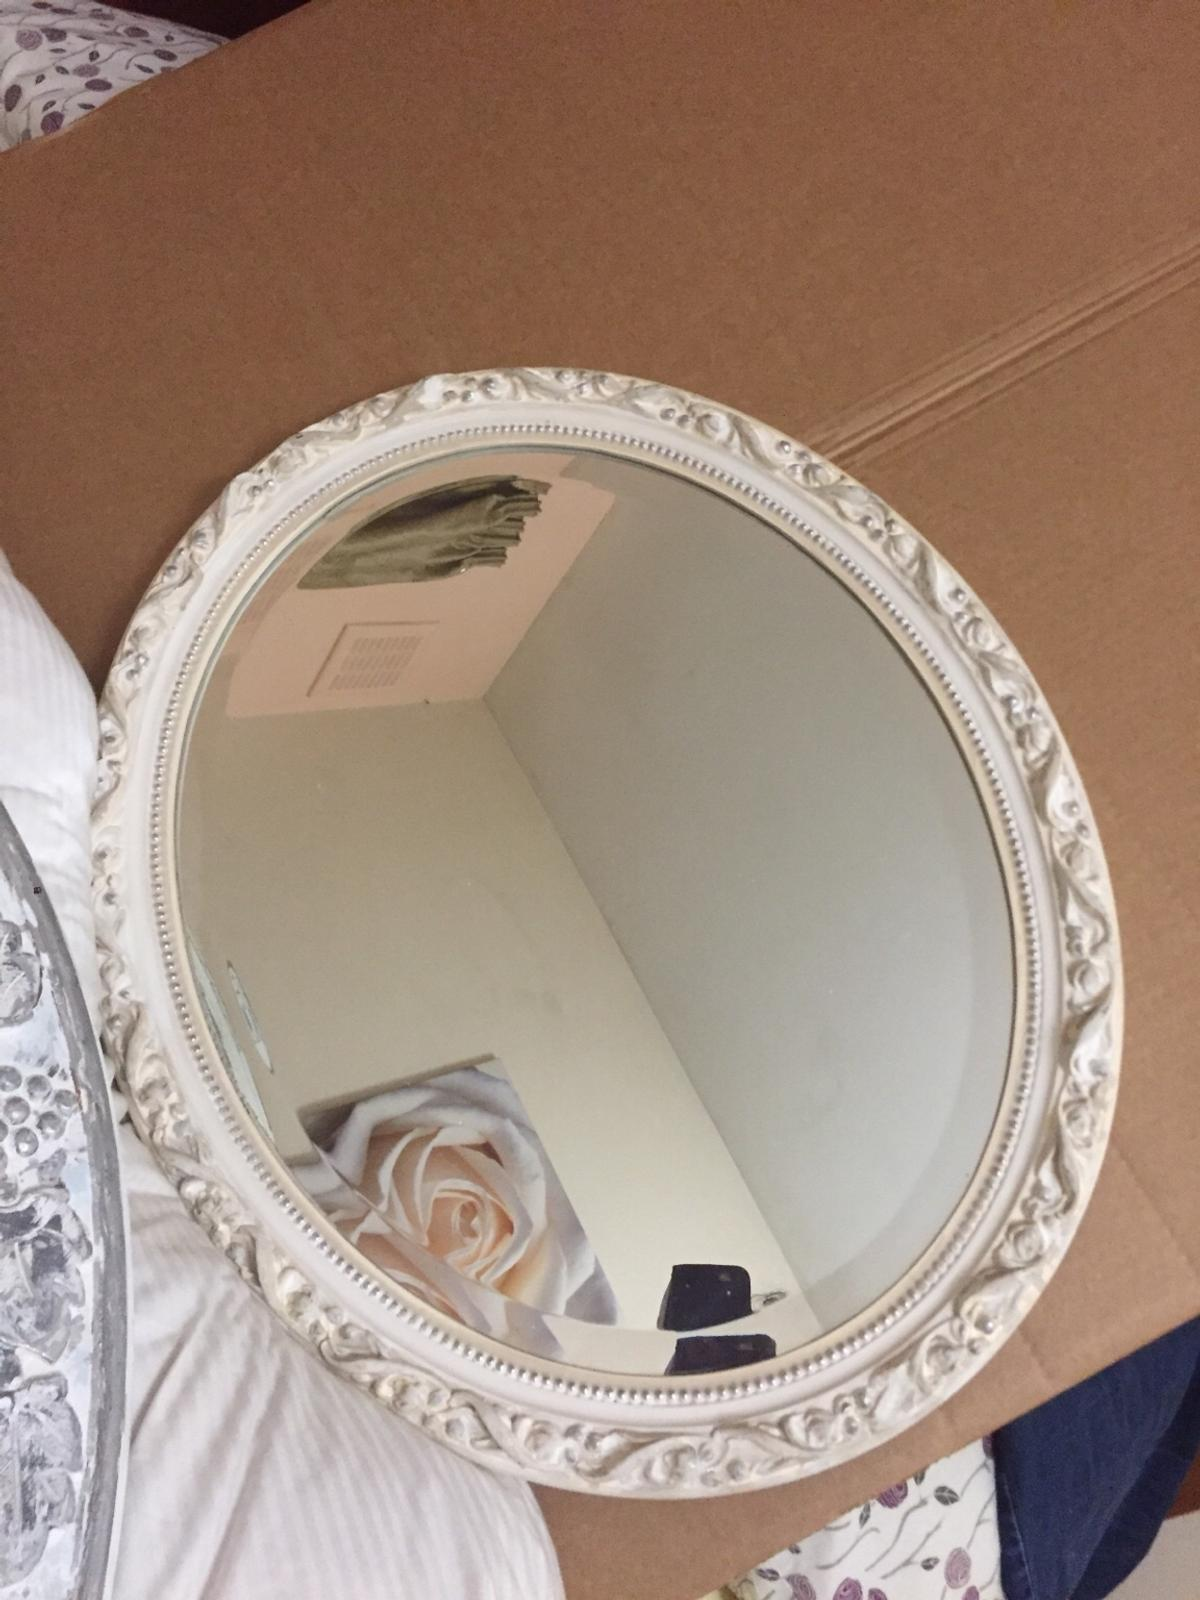 Oval Mirror Wood Frame Oval Mirror Wood Framed In E7 Newham For 20 00 For Sale